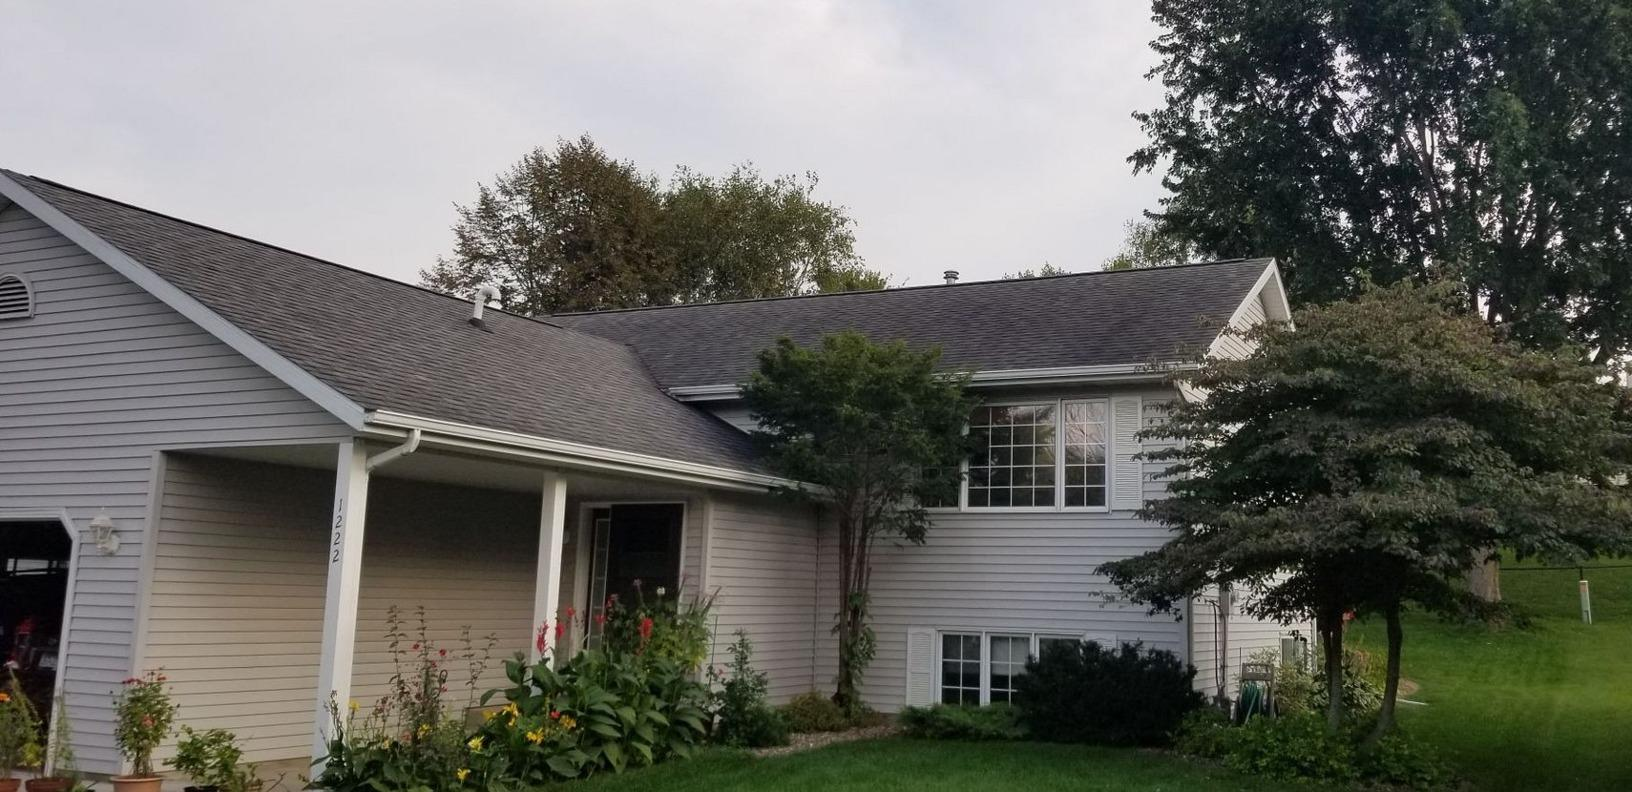 Hail Damage Roof Replacement in Rochester, MN - Before Photo